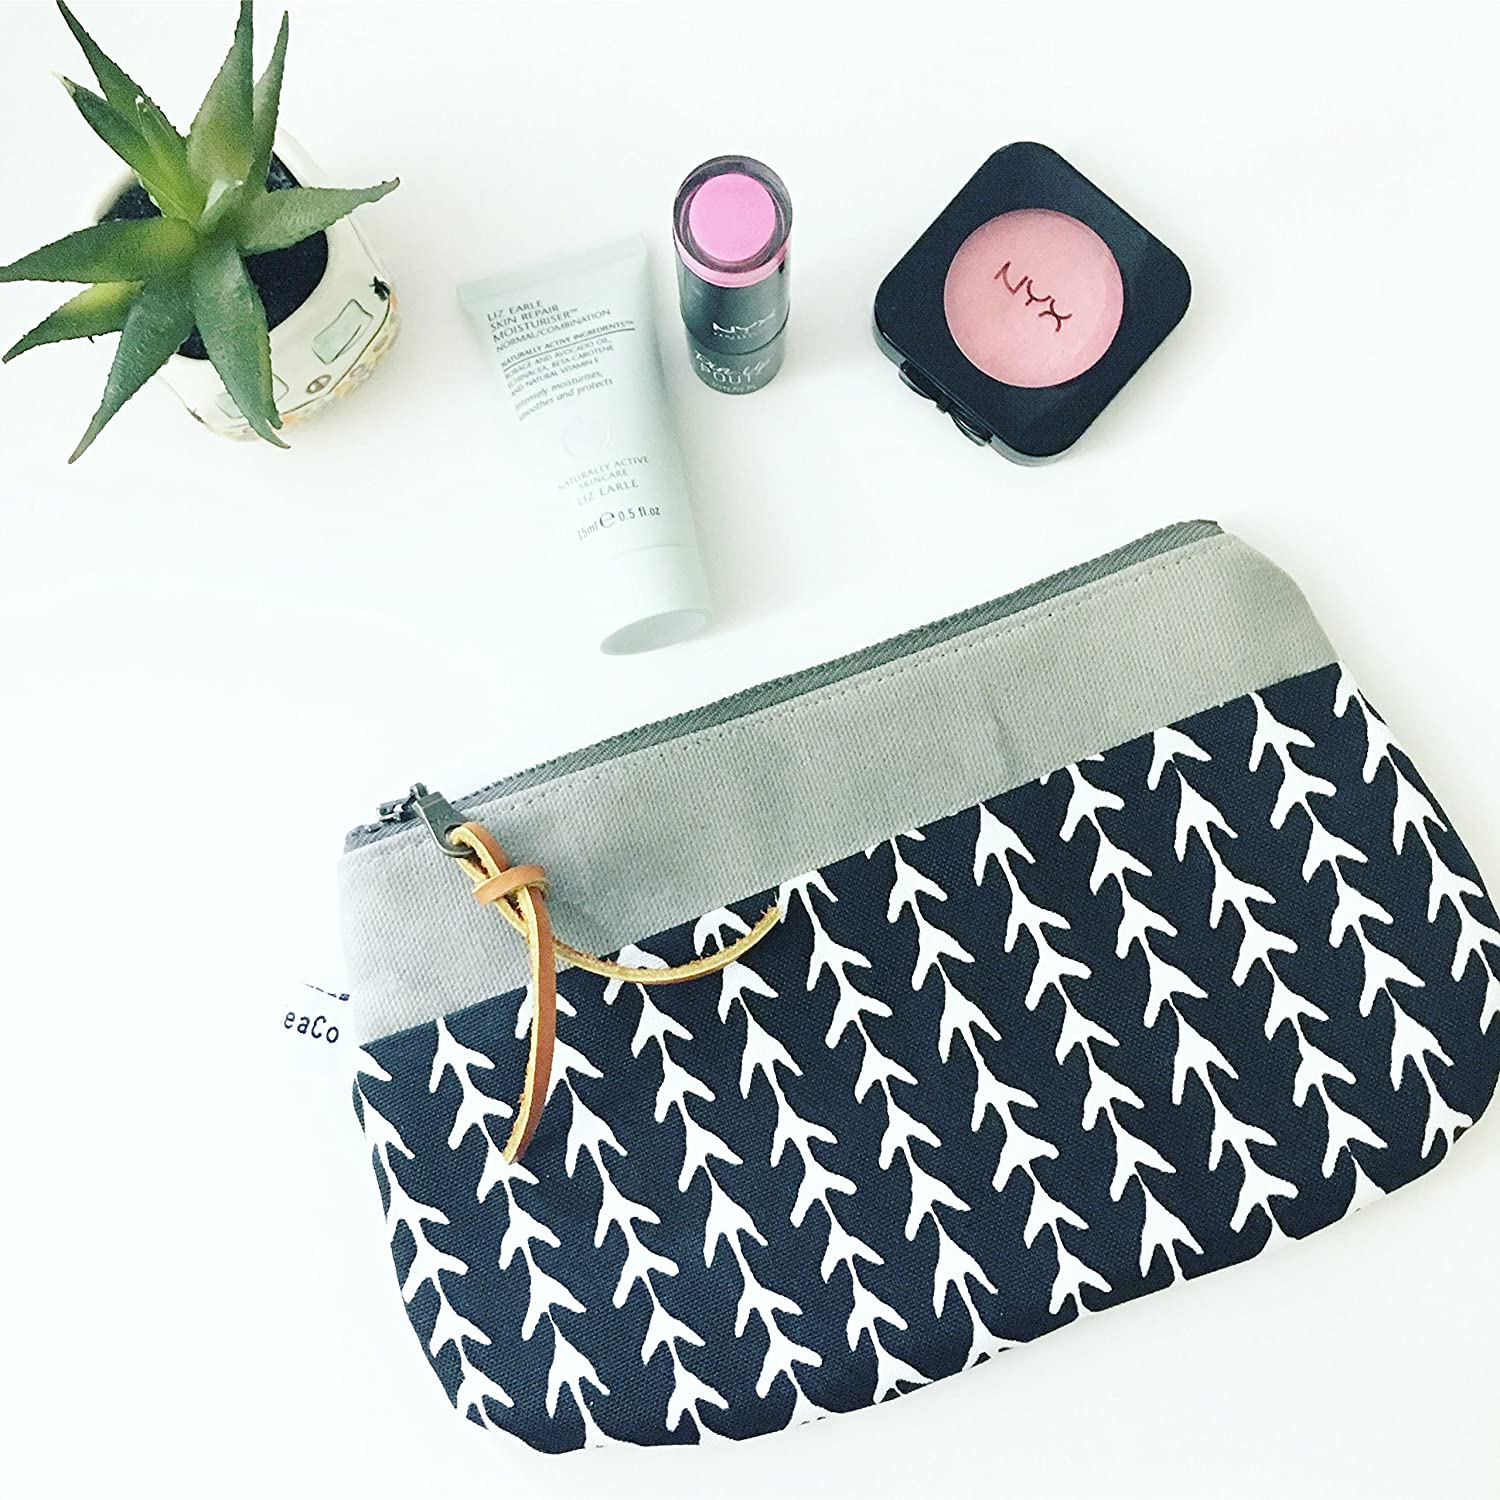 Makeup Zipper Pouch in Monochrome Canvas